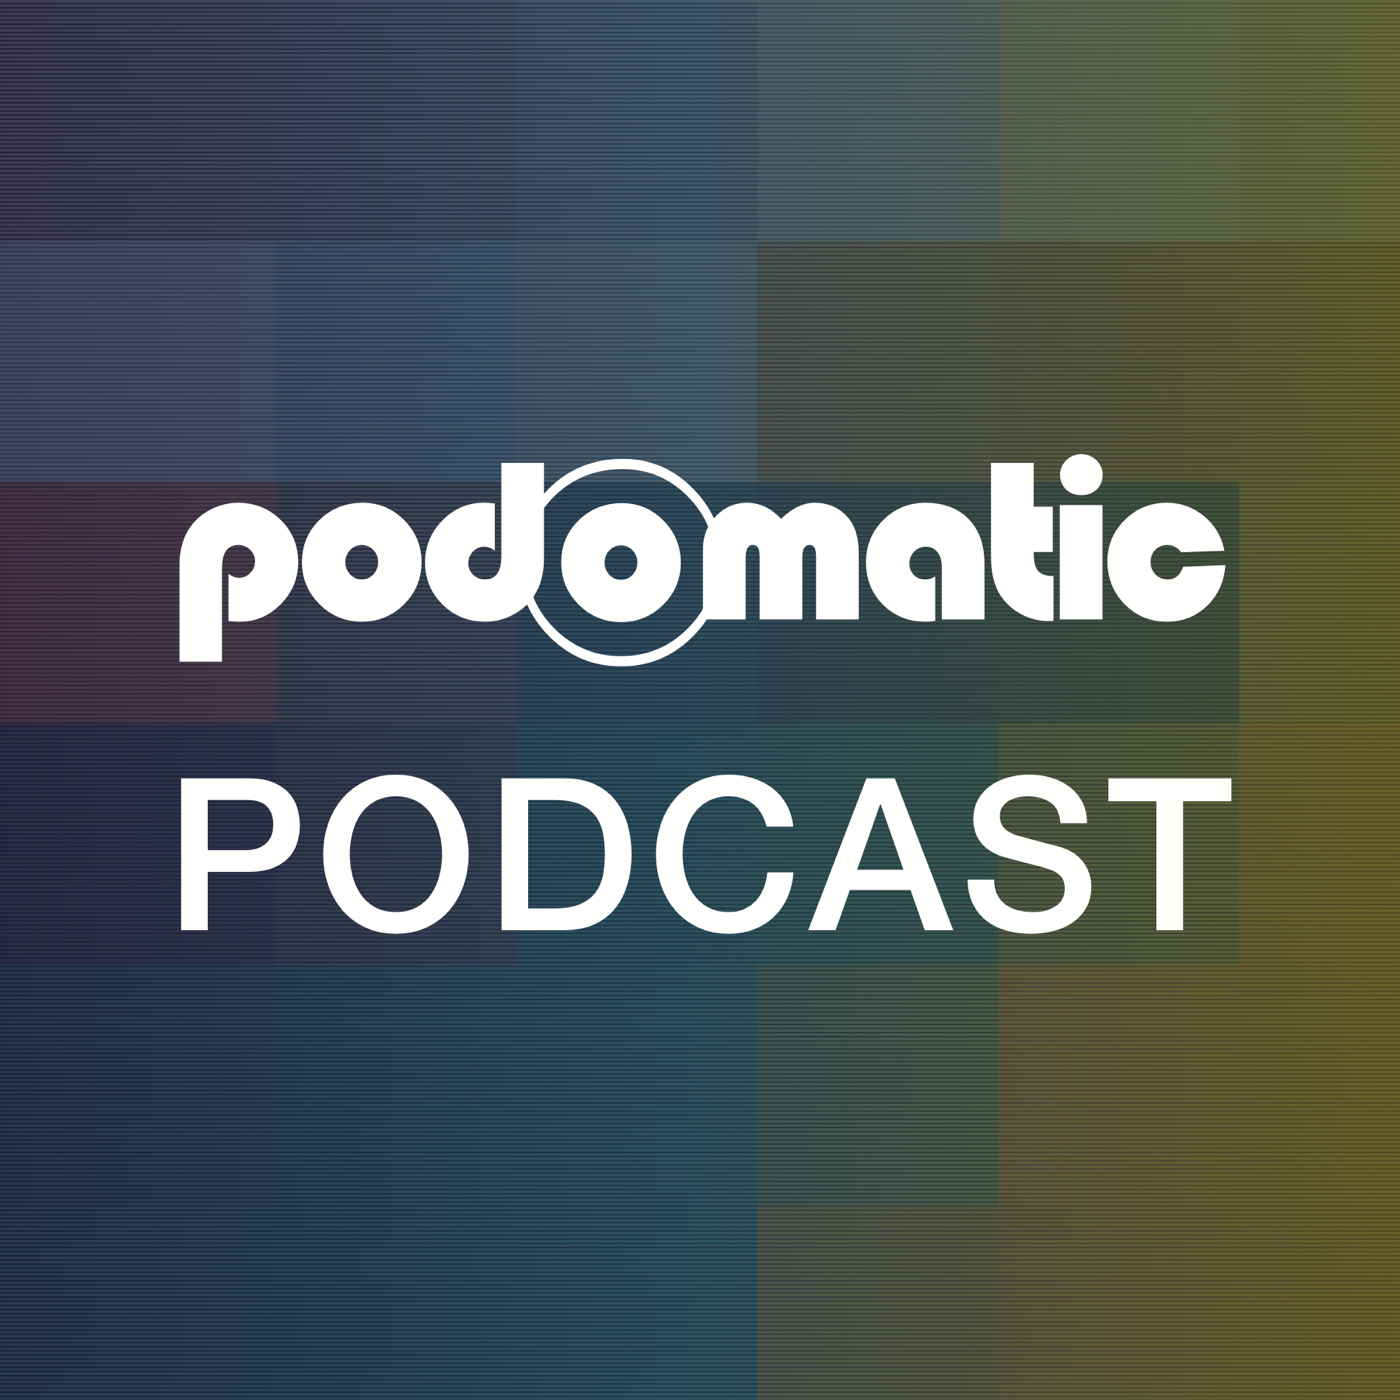 The former podcast